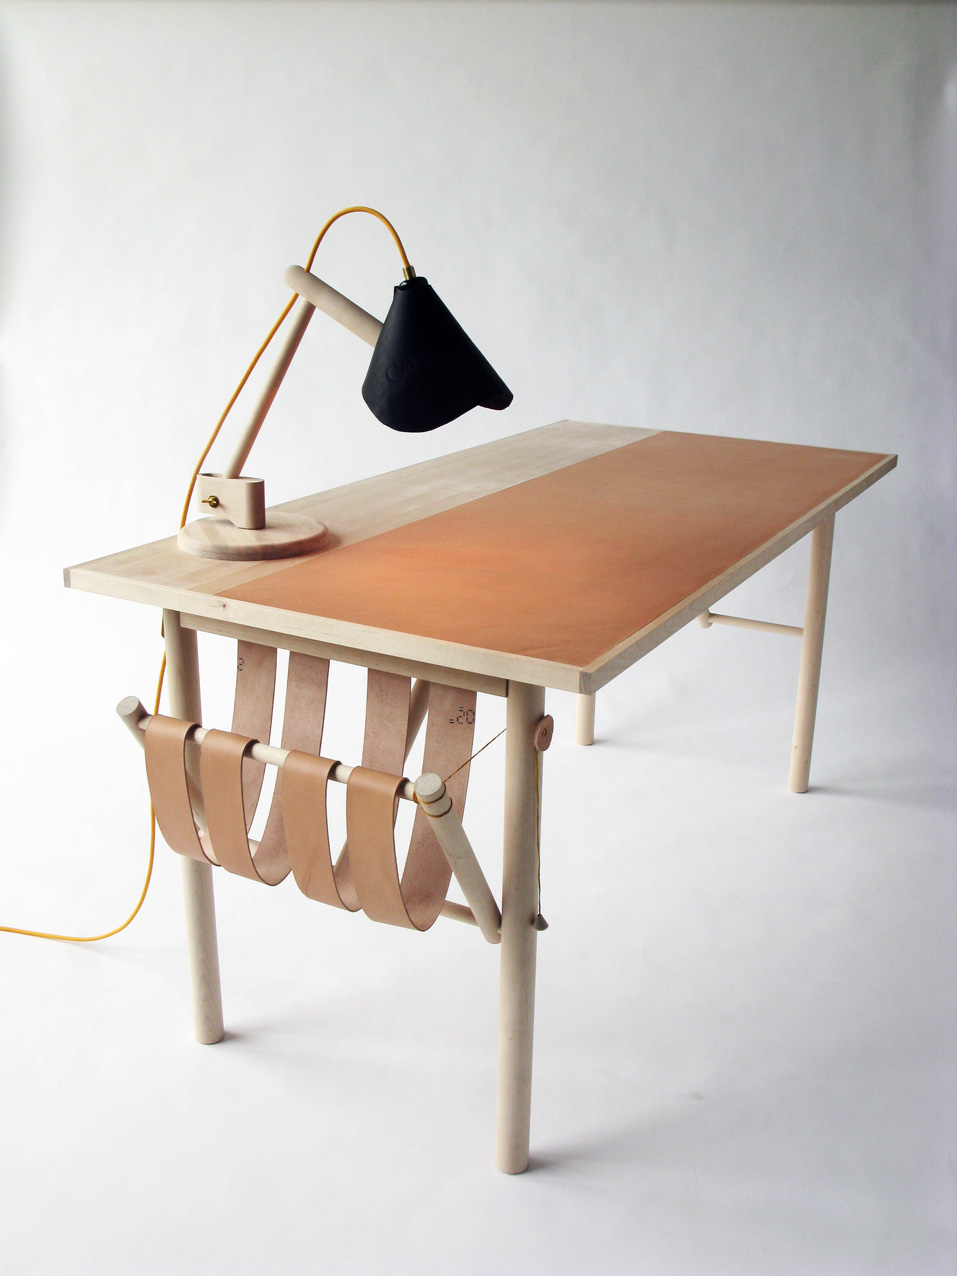 One of the table lamps and the desk from Ericsson's 'Carl Malmsten Made Me Do It' graduation project.